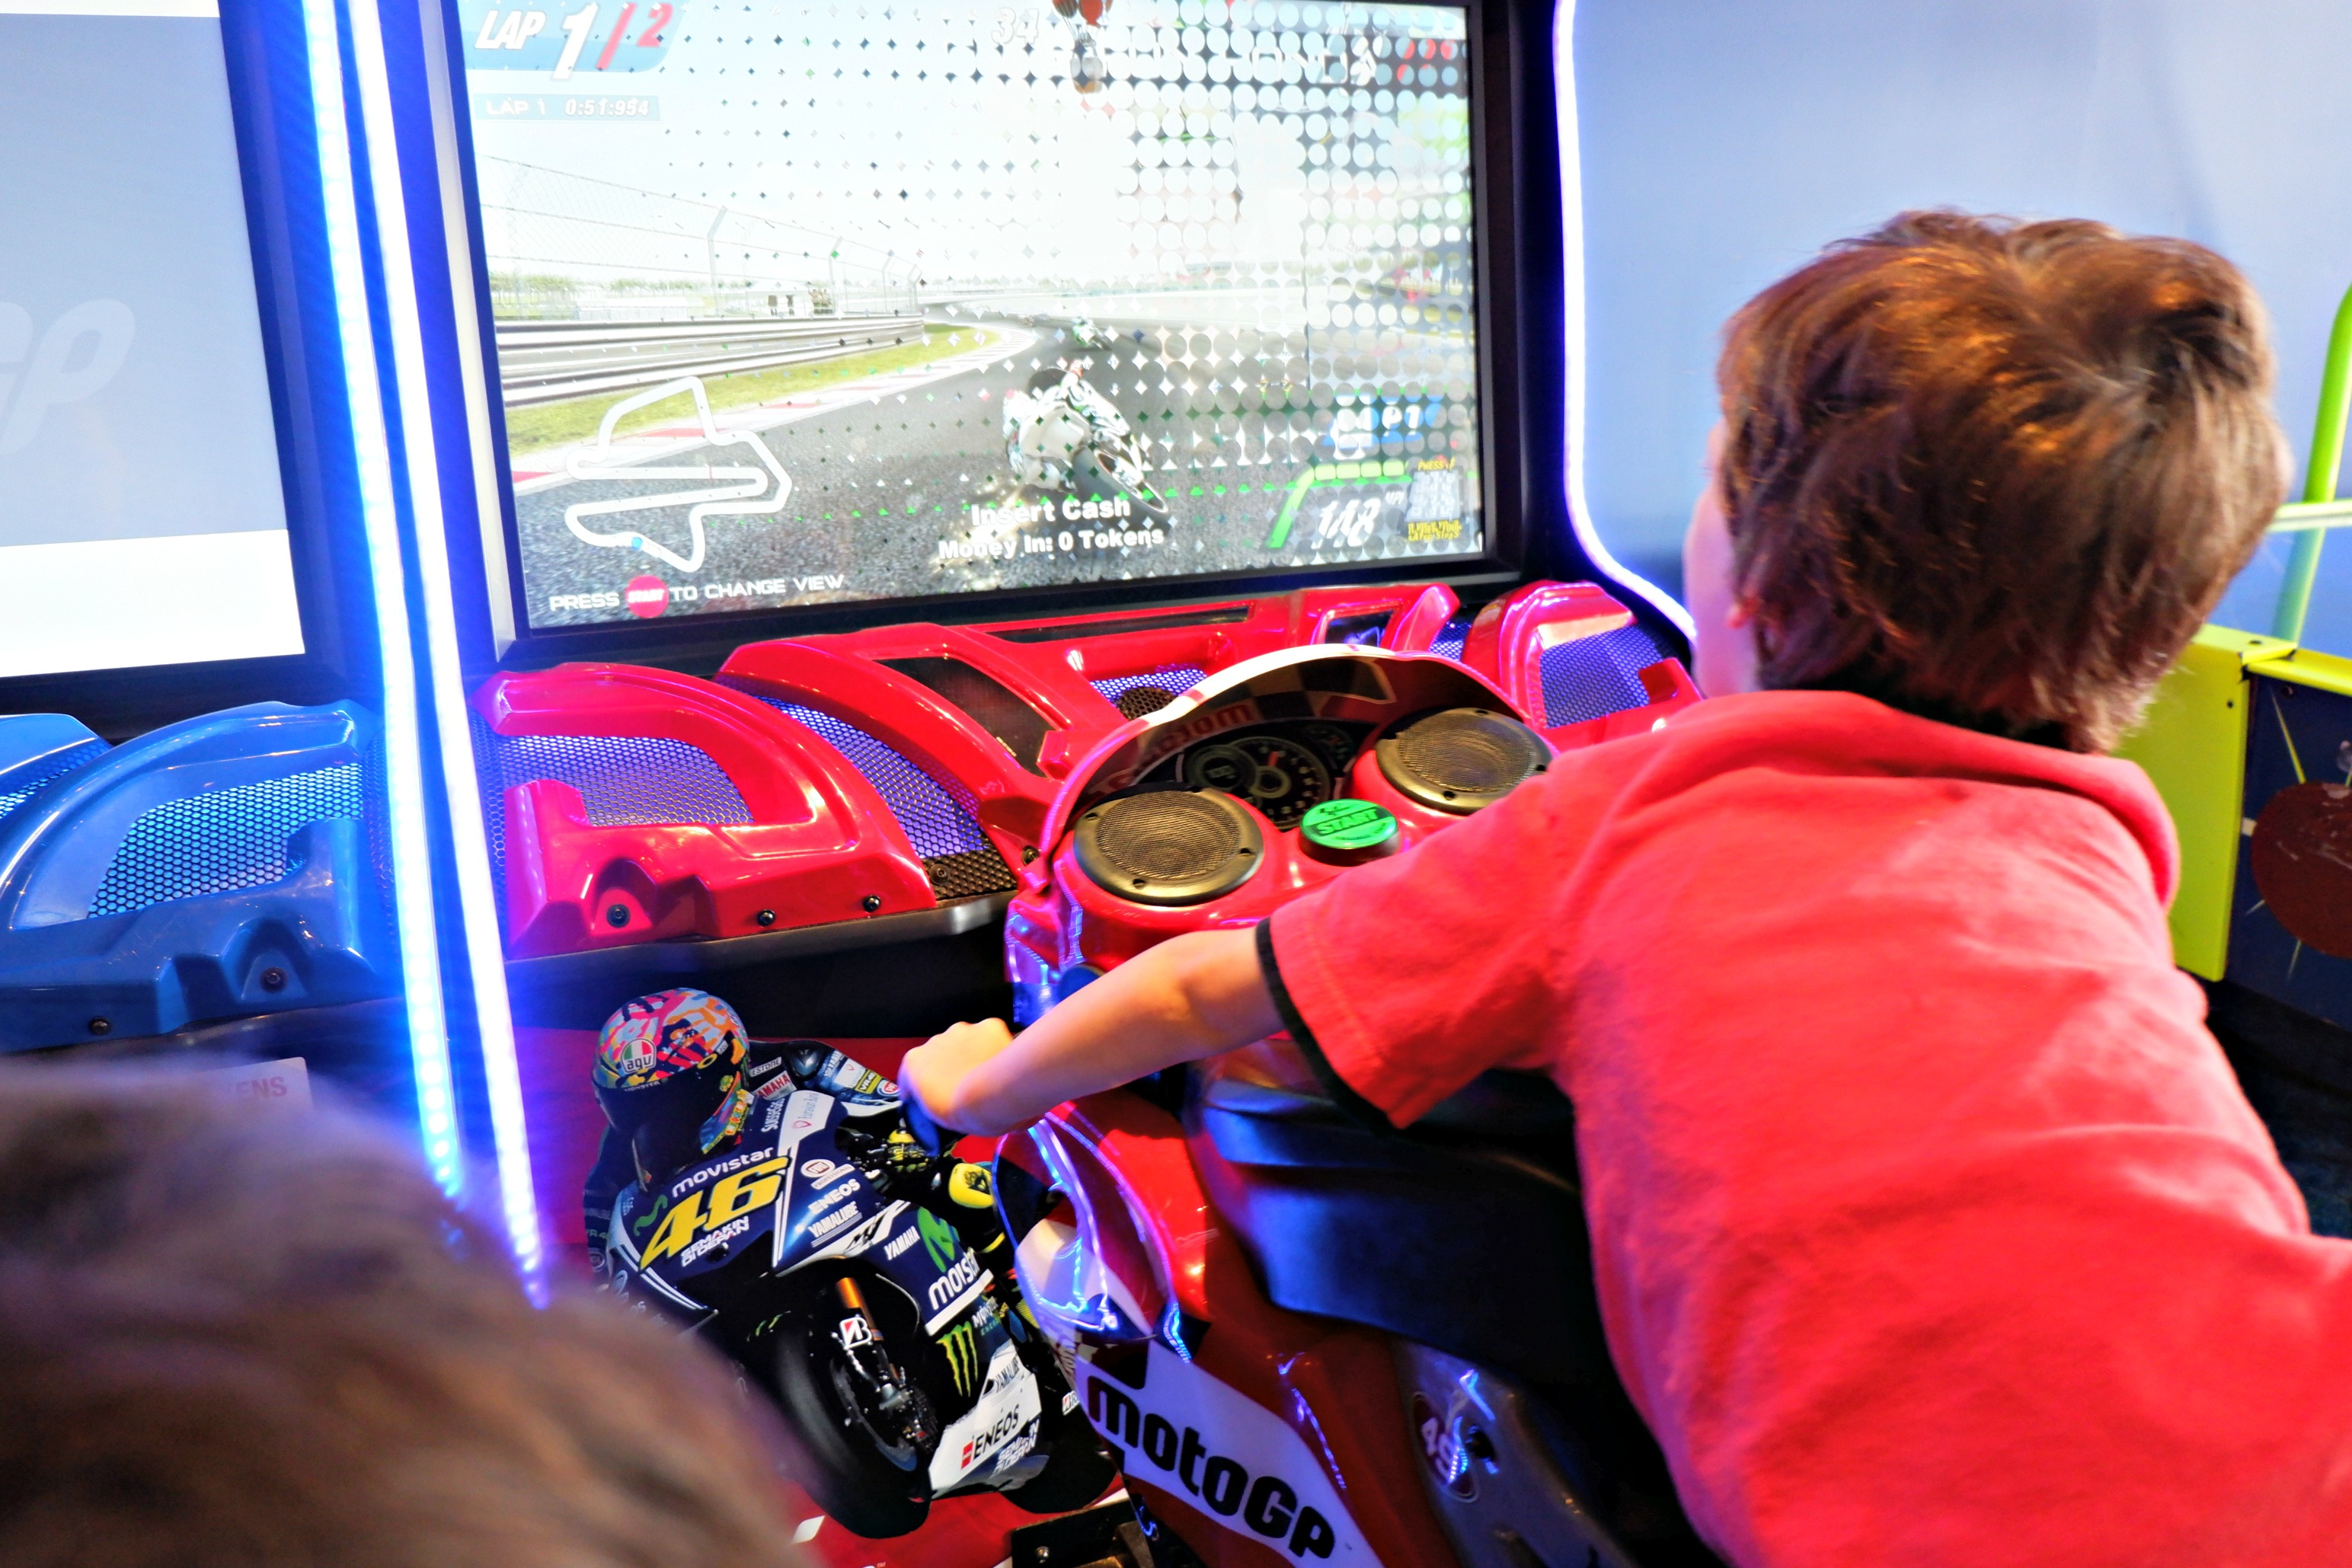 arcades moncton riverview dieppe indoor fun race car game